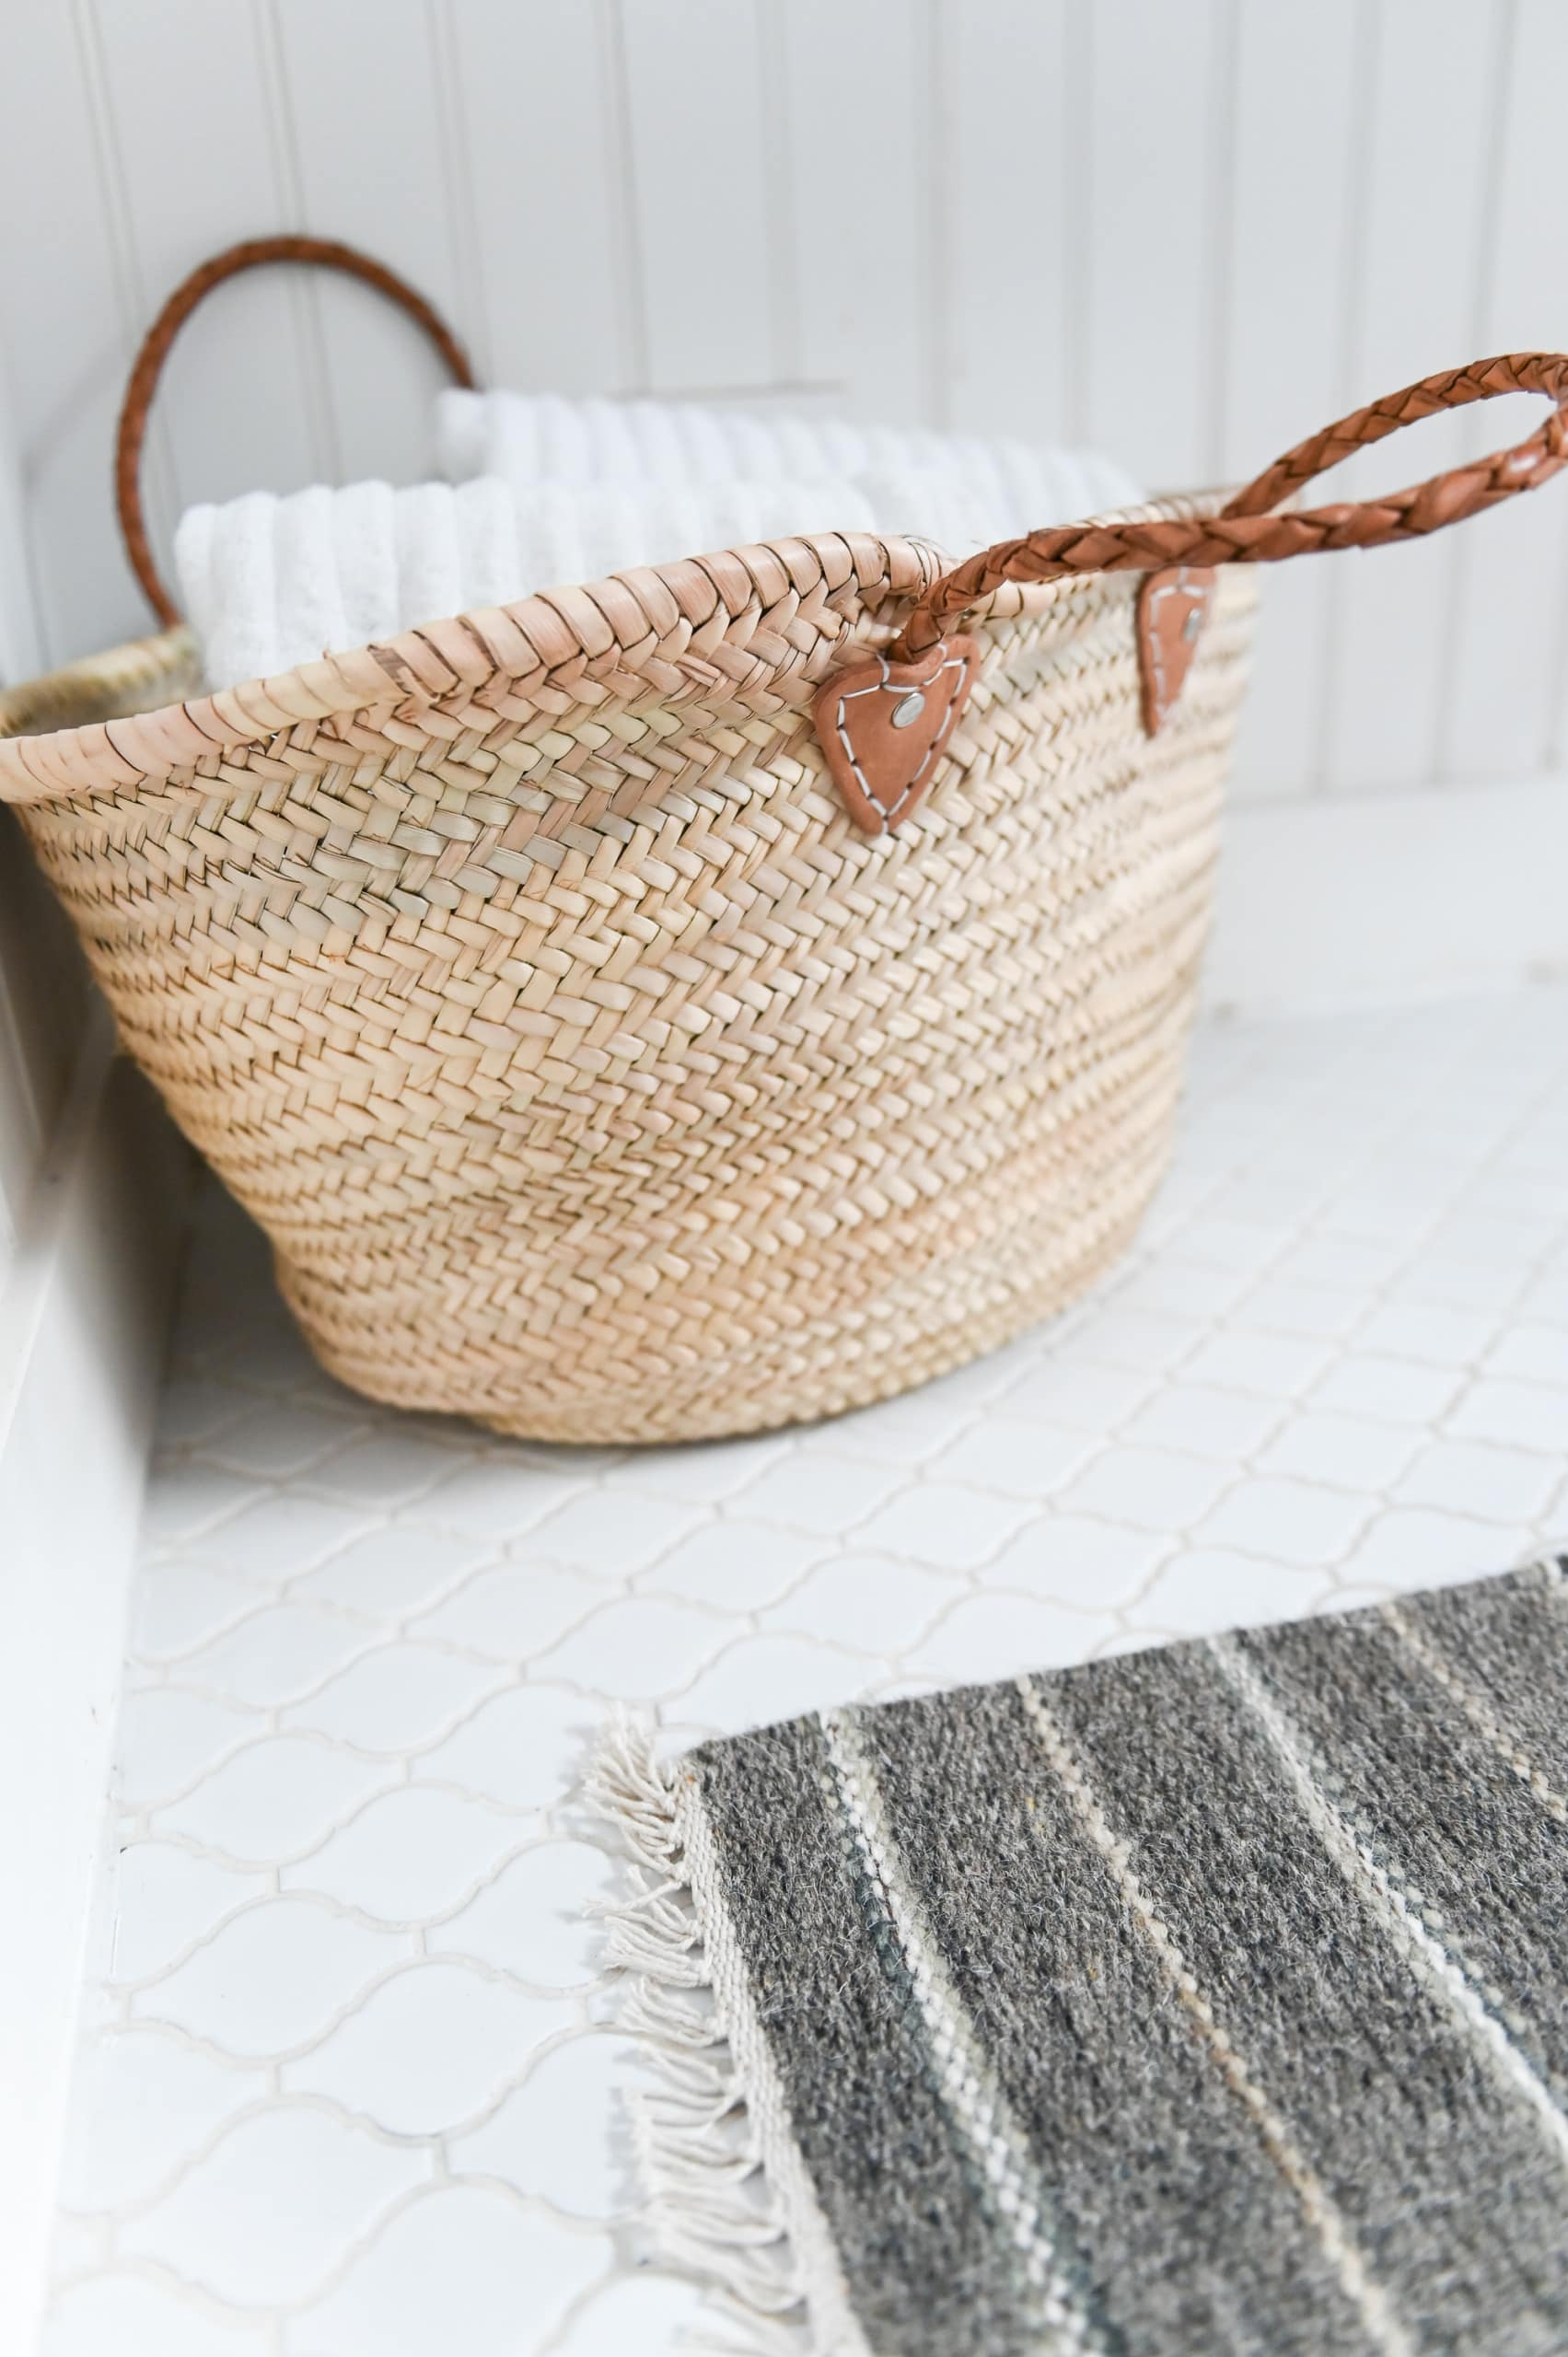 Basket in bathroom